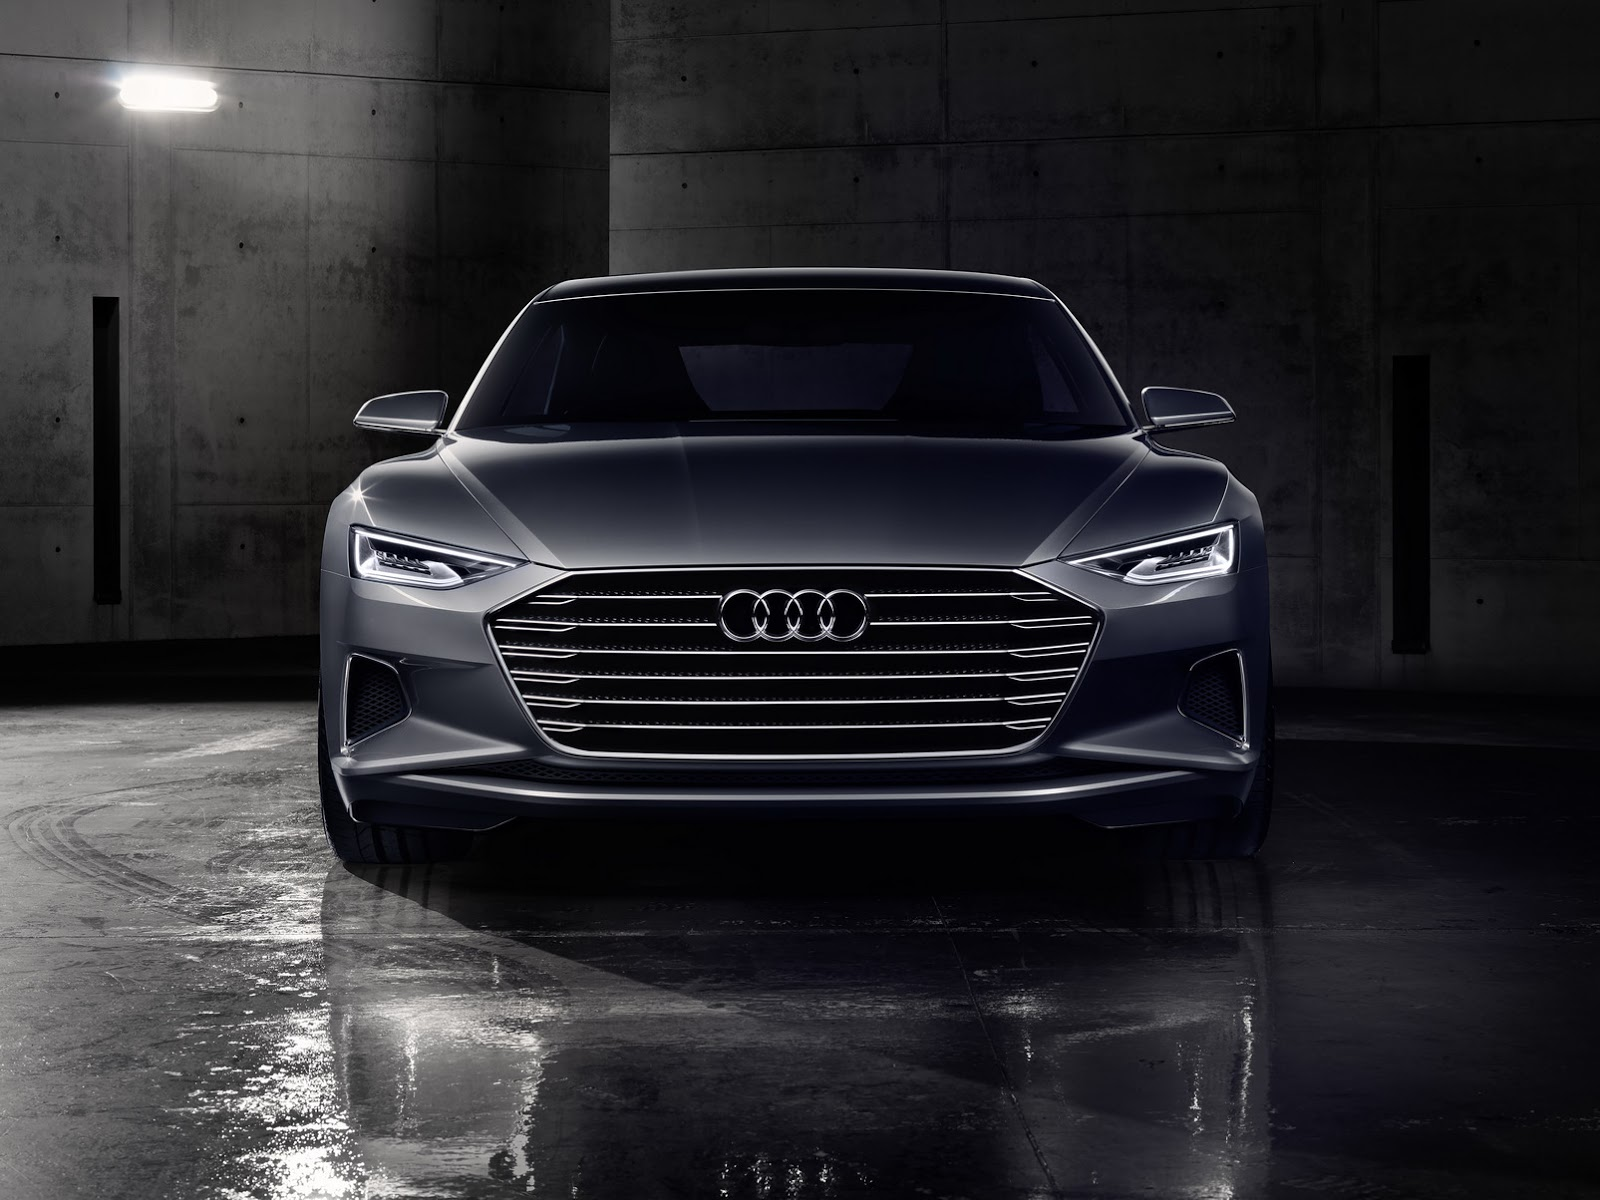 2017 Audi A6 Confirmed by Marc Lichte, Will Ride on MLB Evo - autoevolution